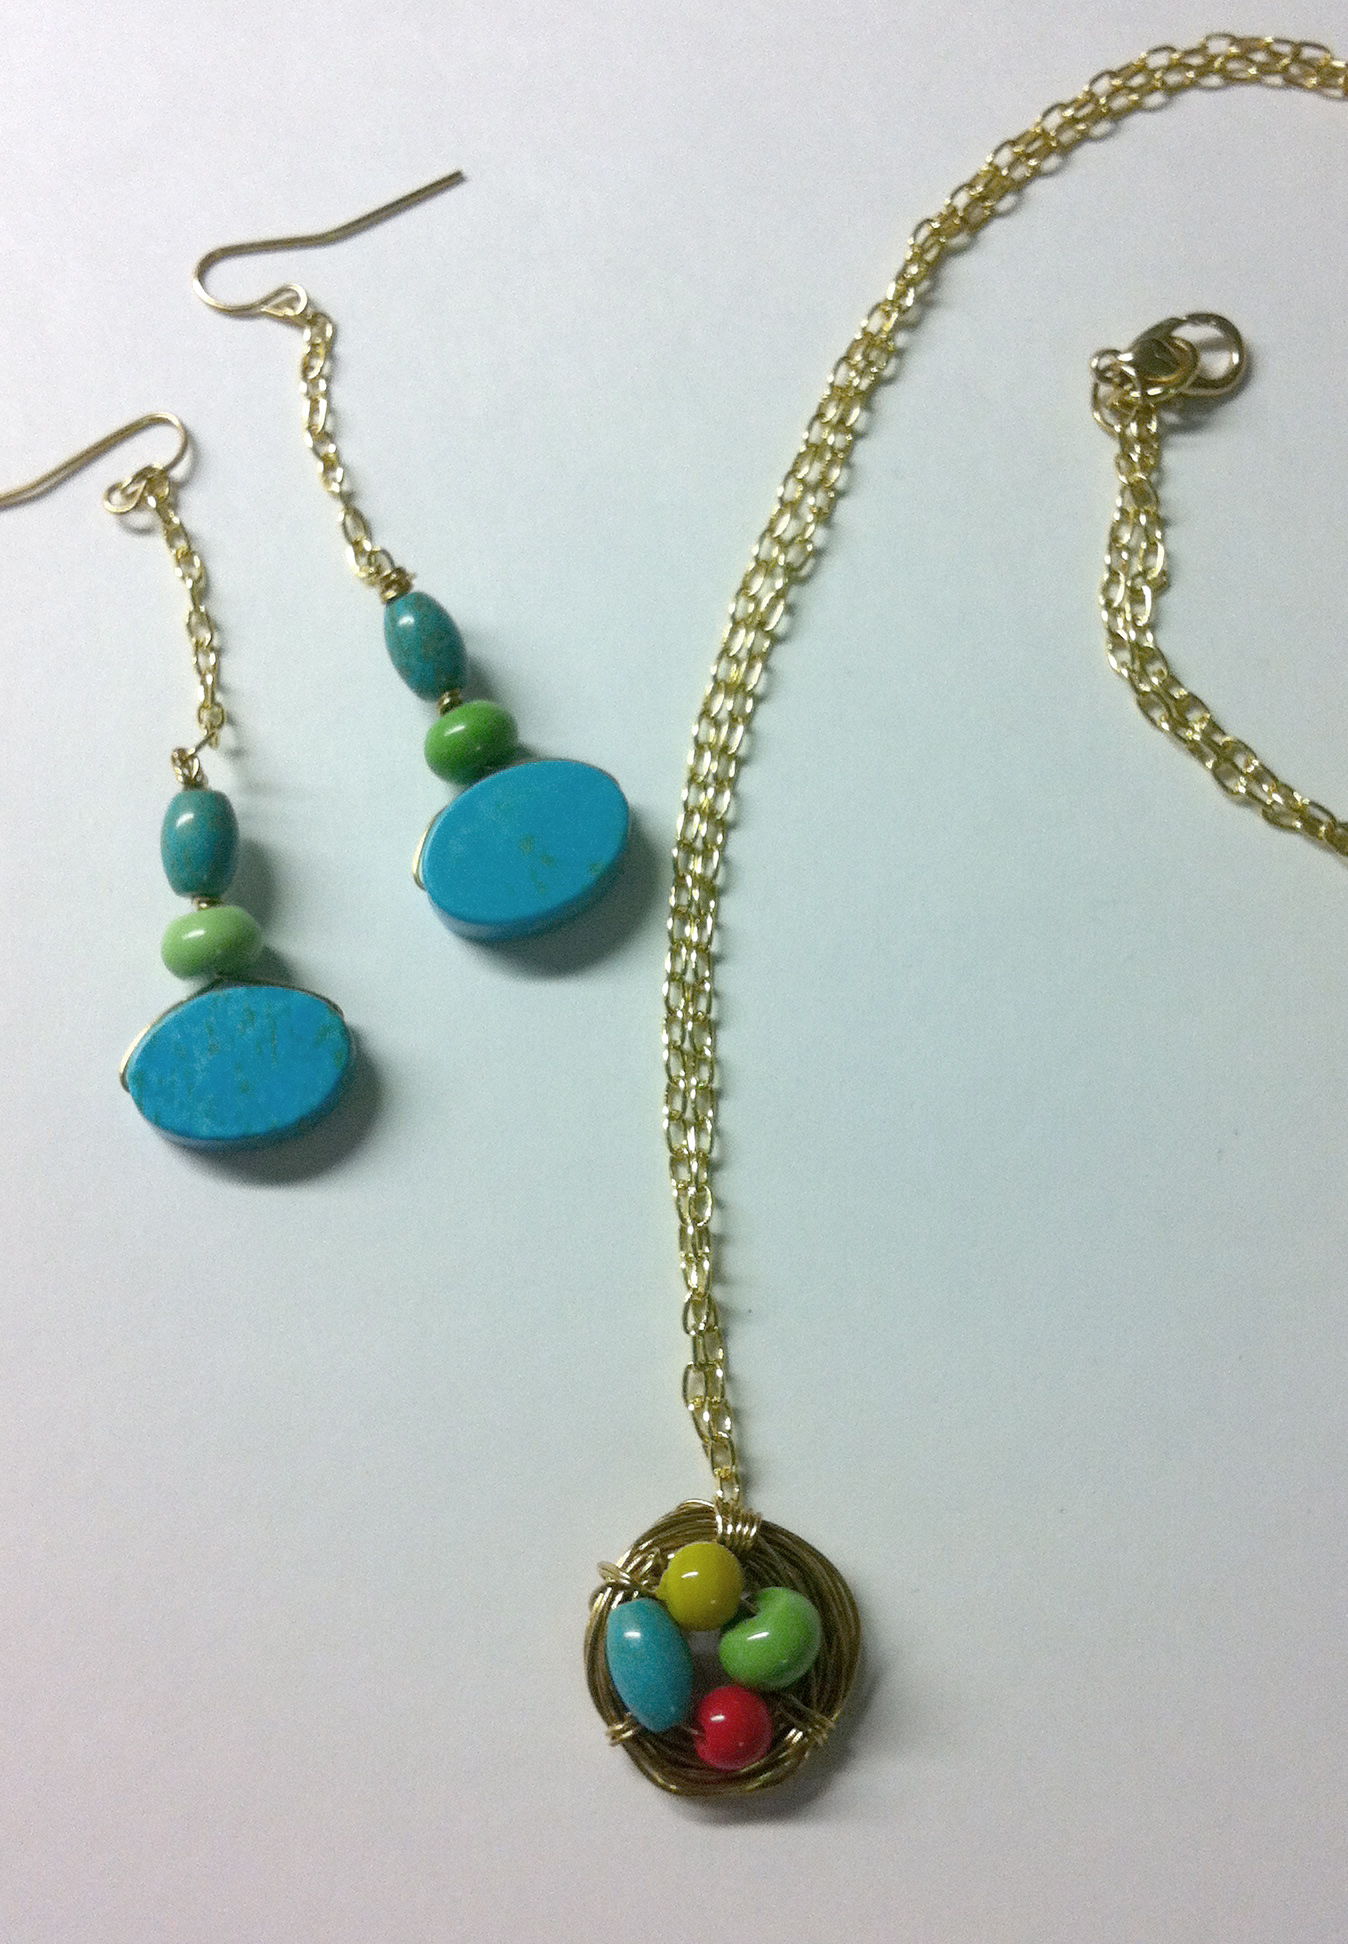 Nest Necklace & Earrings Set